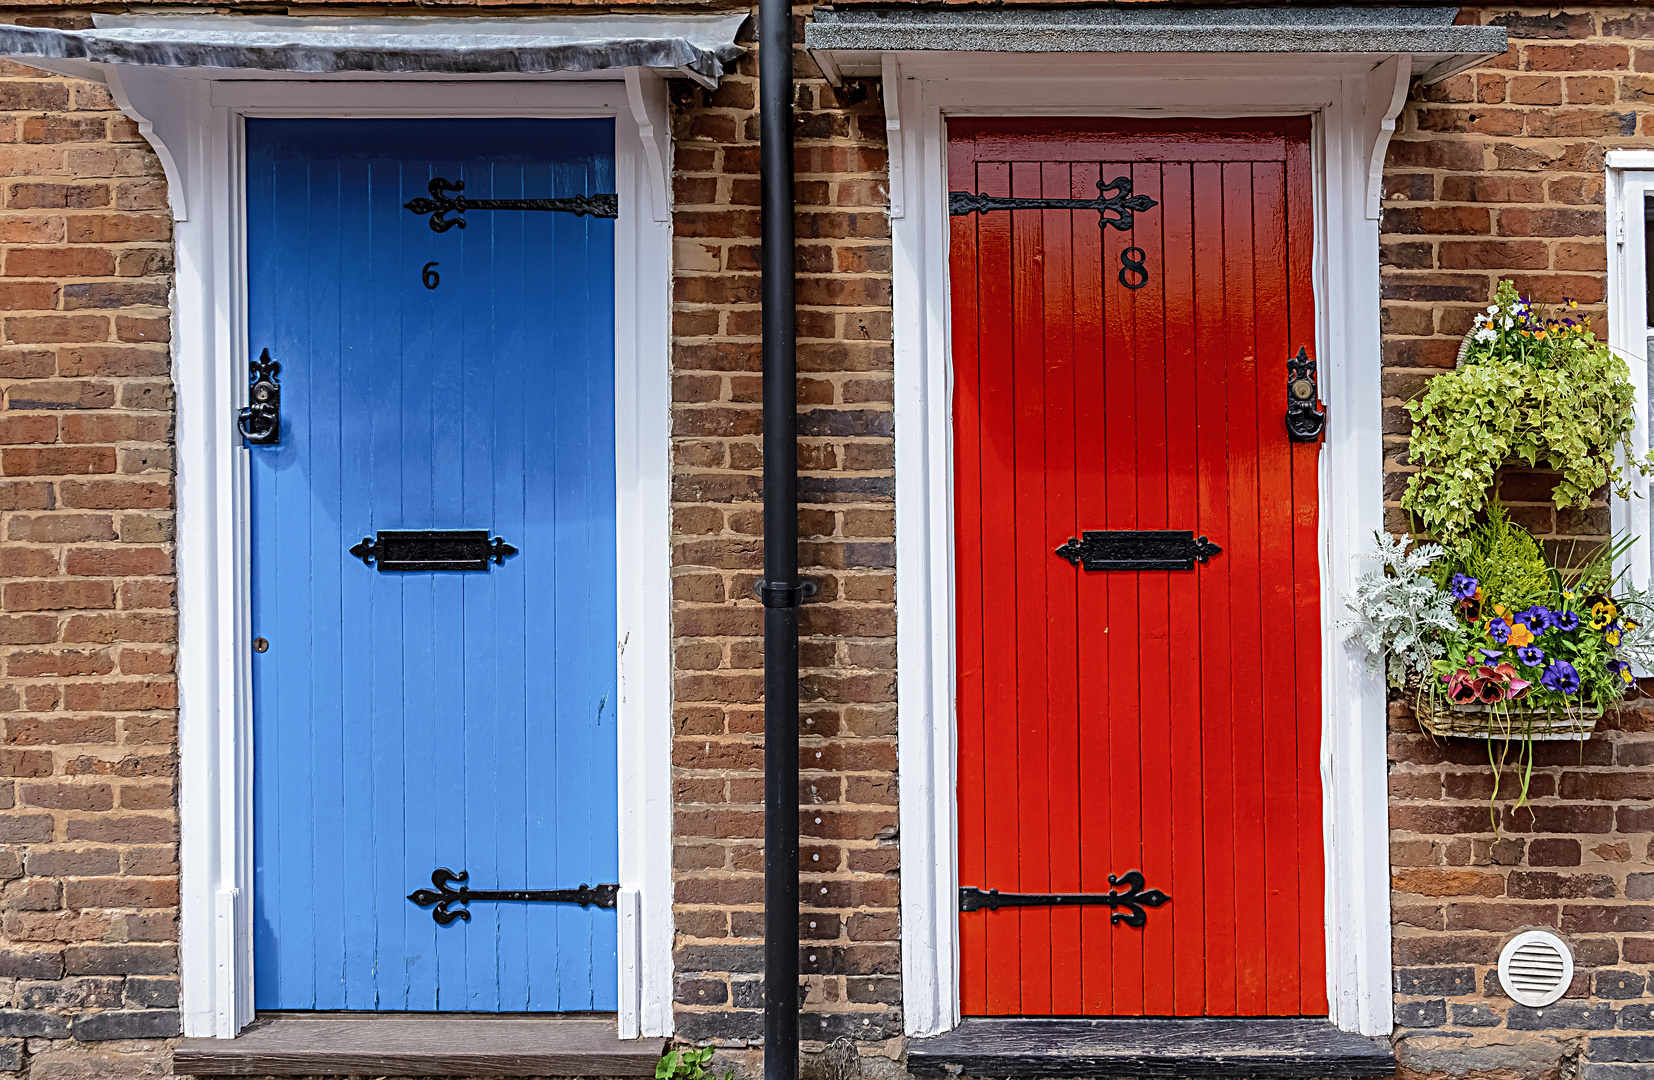 Will you take the Red door or the Blue Door?